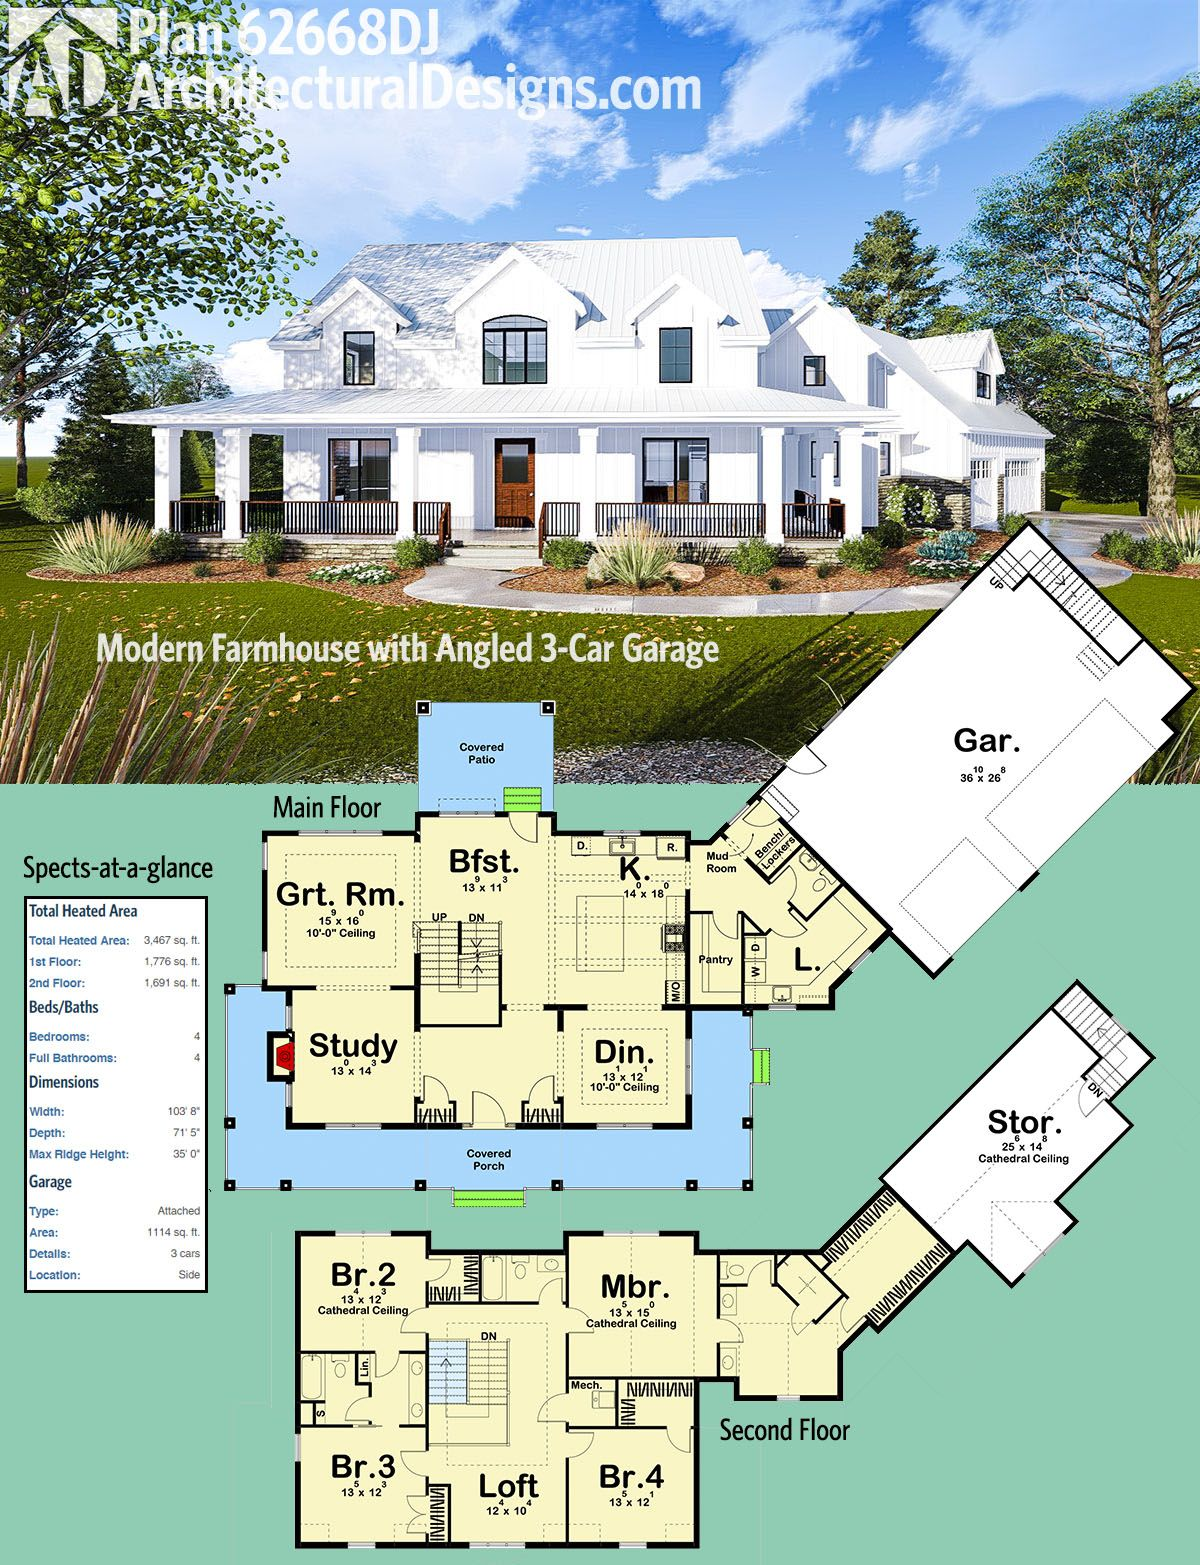 Farmhouse Plans plan 62668dj: modern farmhouse with angled 3-car garage